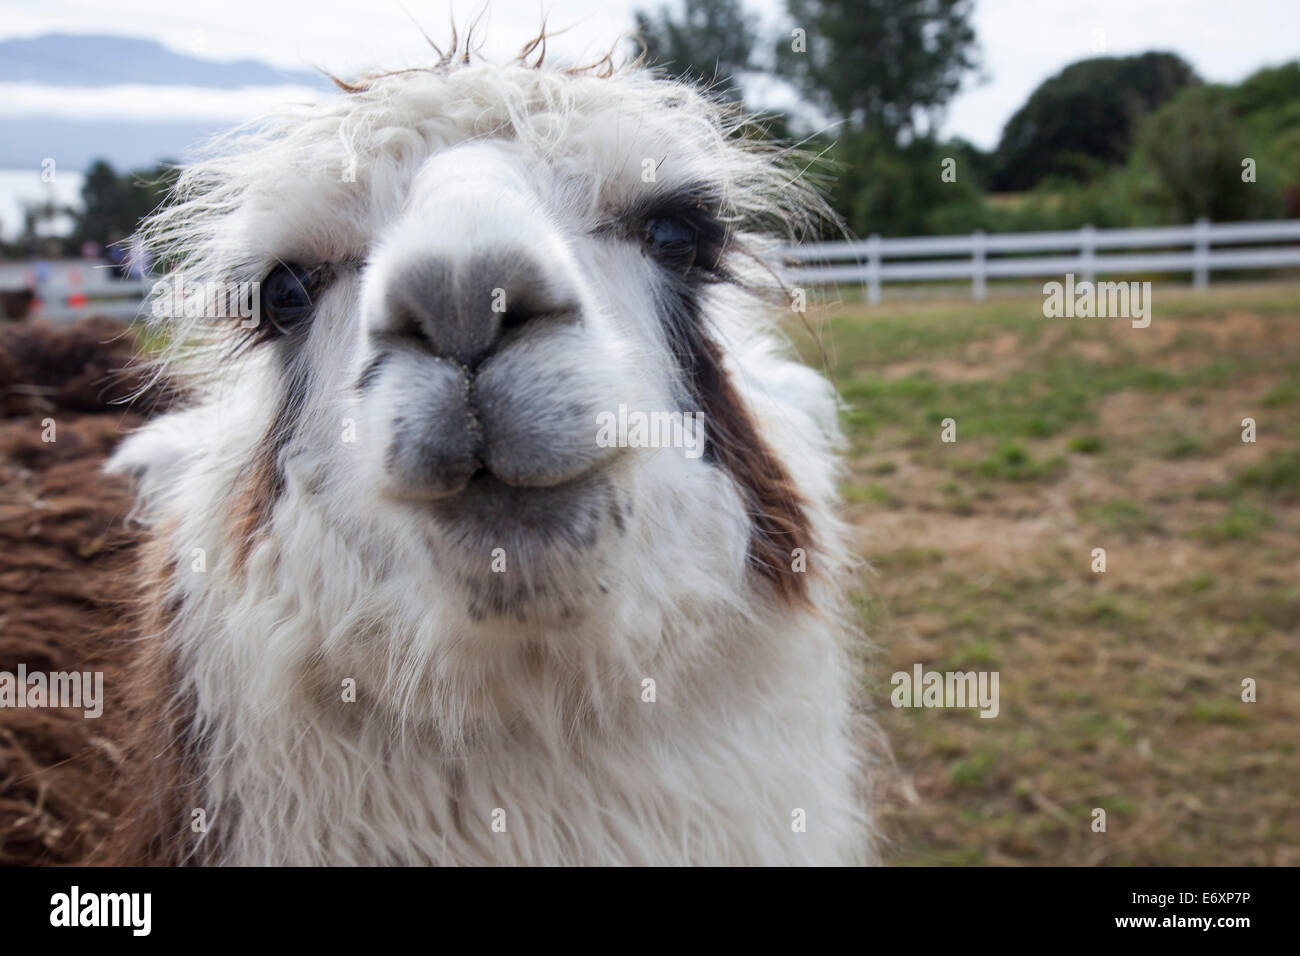 Wet look: Portrait of a llama with wet fur, near Puerto Montt, Los Lagos, Patagonia, Chile - Stock Image